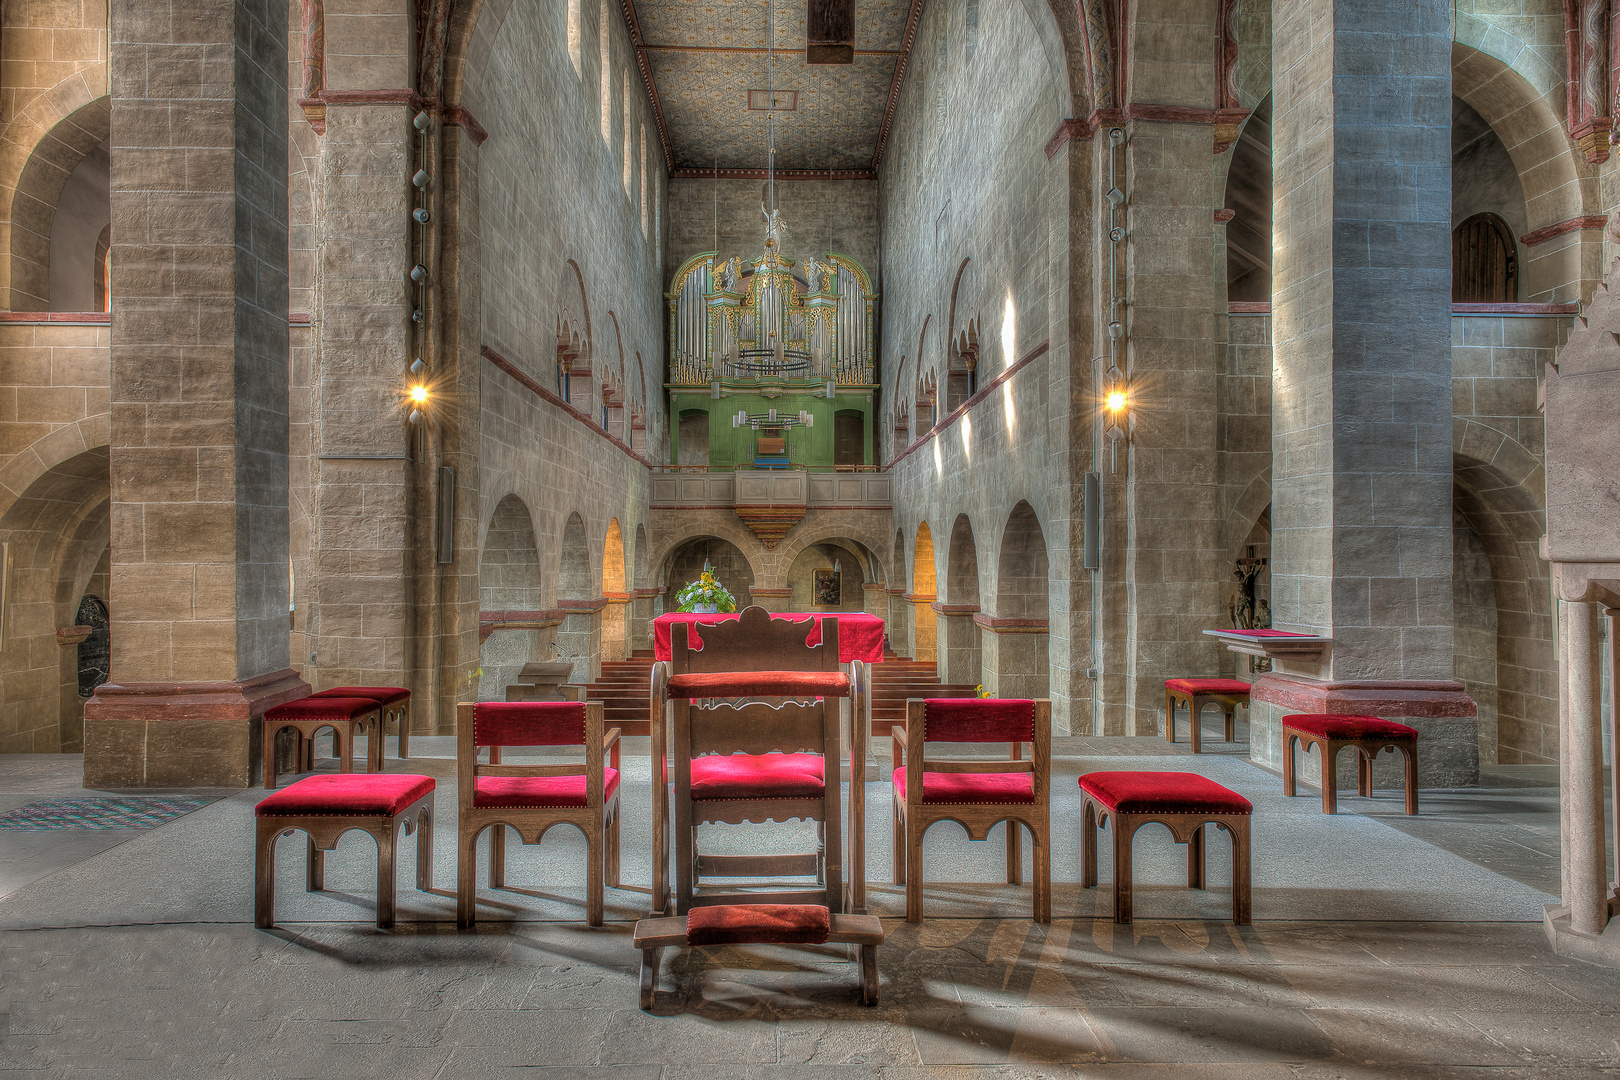 Cathedrals-2